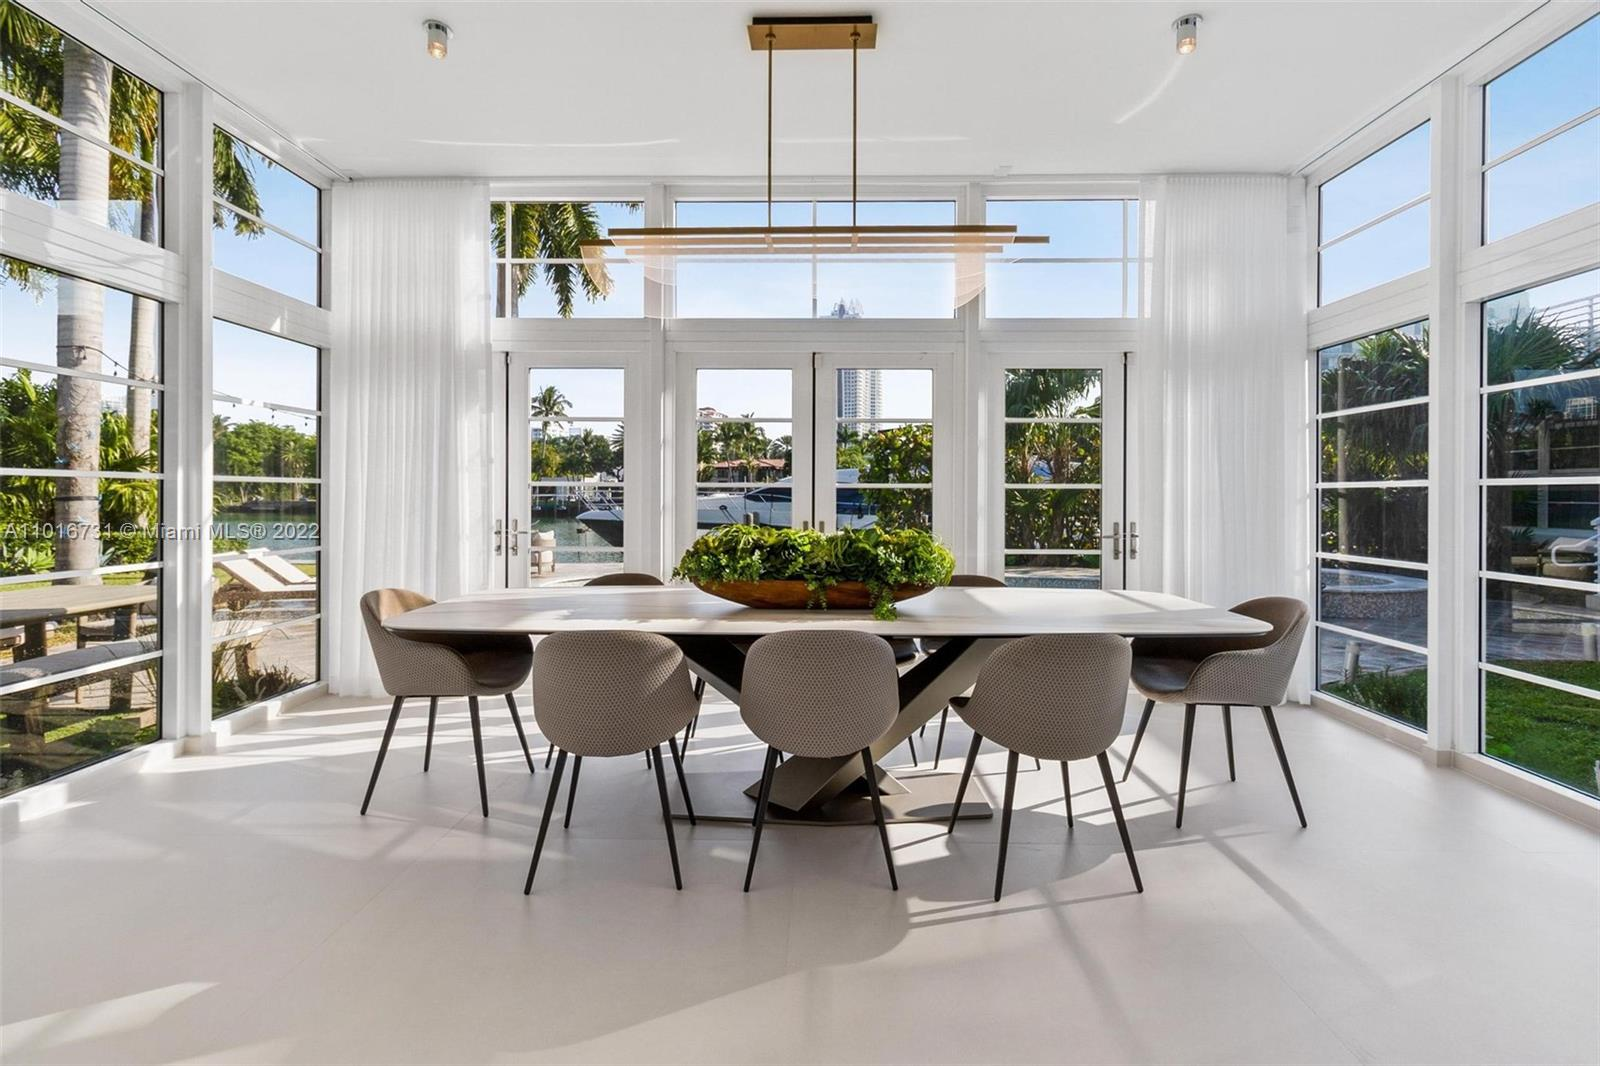 Sitting on most prestigious and in demand location of Miami Beach, this immaculate estate offers 140' of open water on Indian Creek.  Renovated with modern tastes and originally designed by architect Igor Polevitzky, this prestigious estate has been entirely renovated to offer only the finest finishes in interior design and state of the art appliances.  Large living areas, three-bedroom guesthouse, summer kitchen, and fully equipped for your leisure with sauna room and heated pool.  Location, location, location.